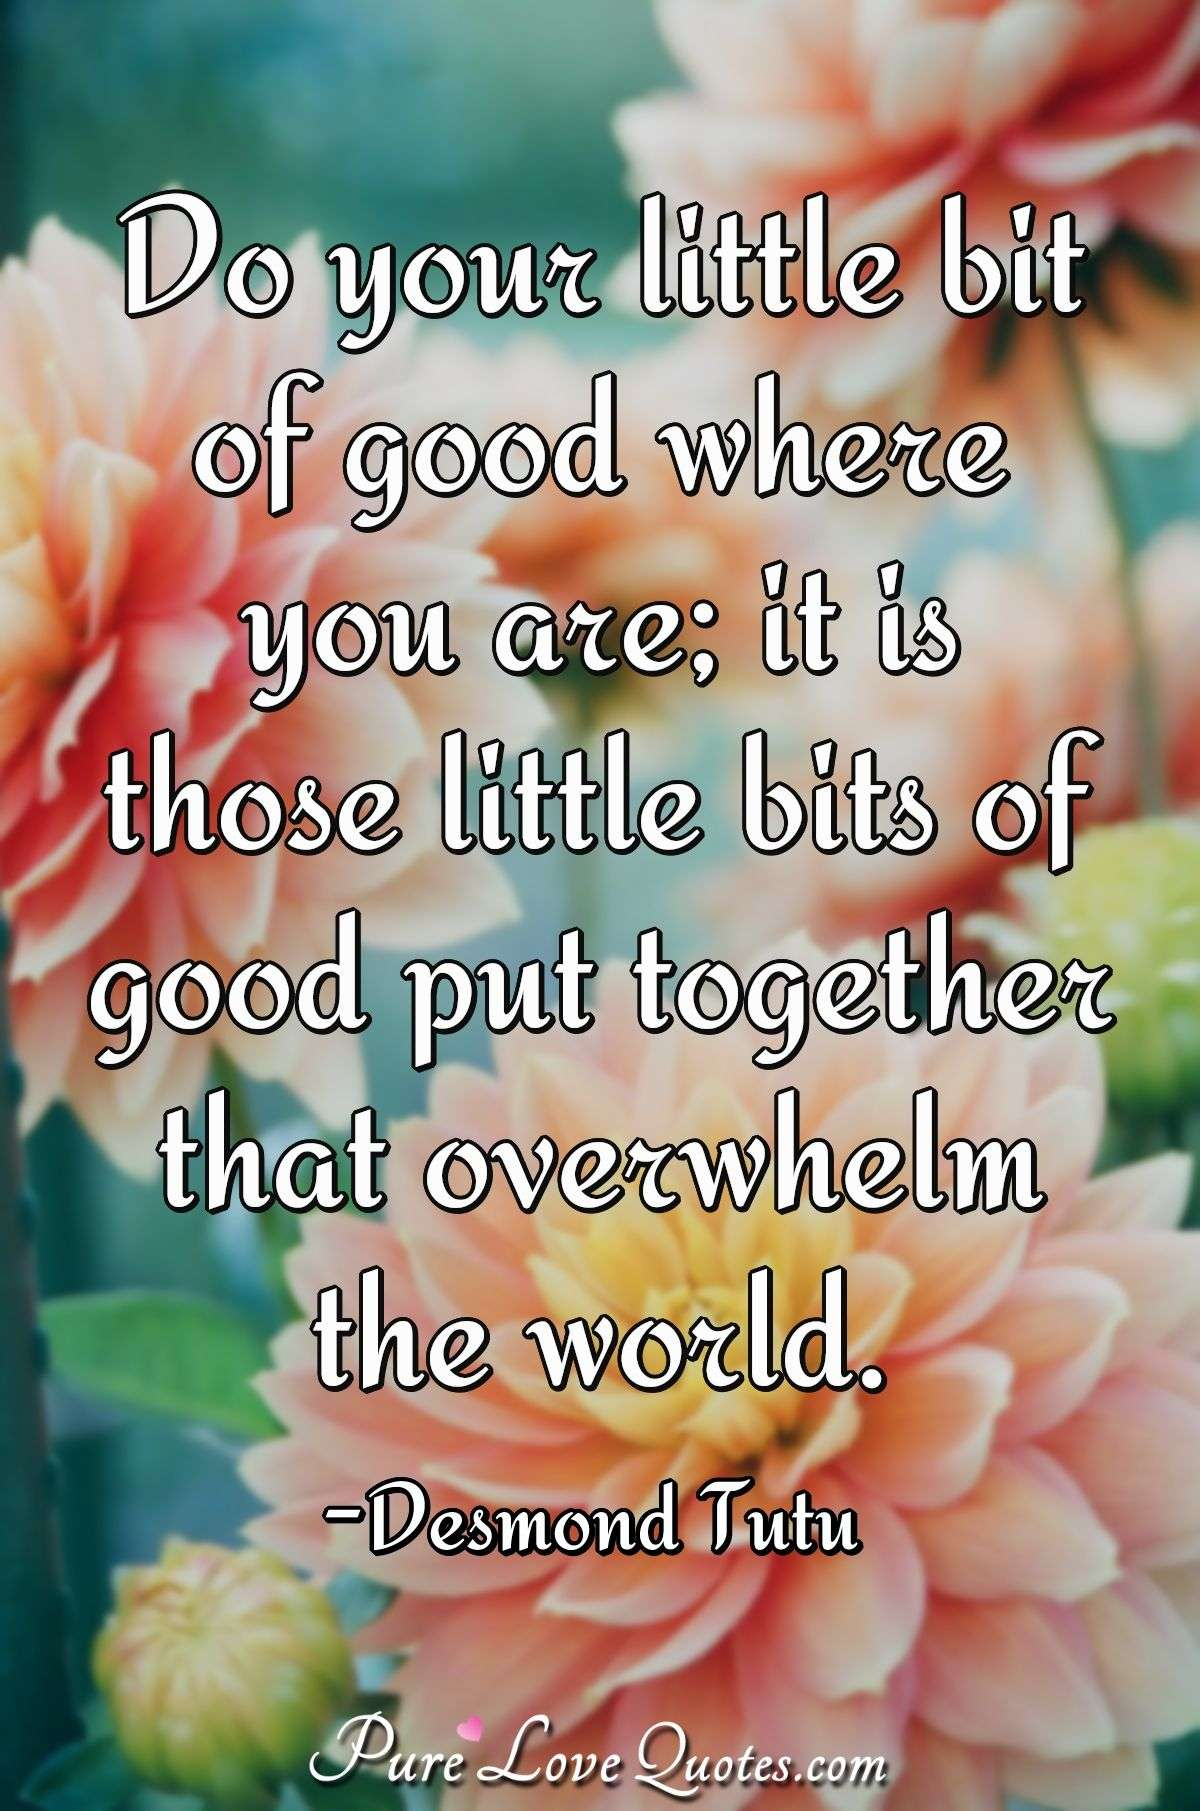 Do your little bit of good where you are; it is those little bits of good put together that overwhelm the world. - Desmond Tutu